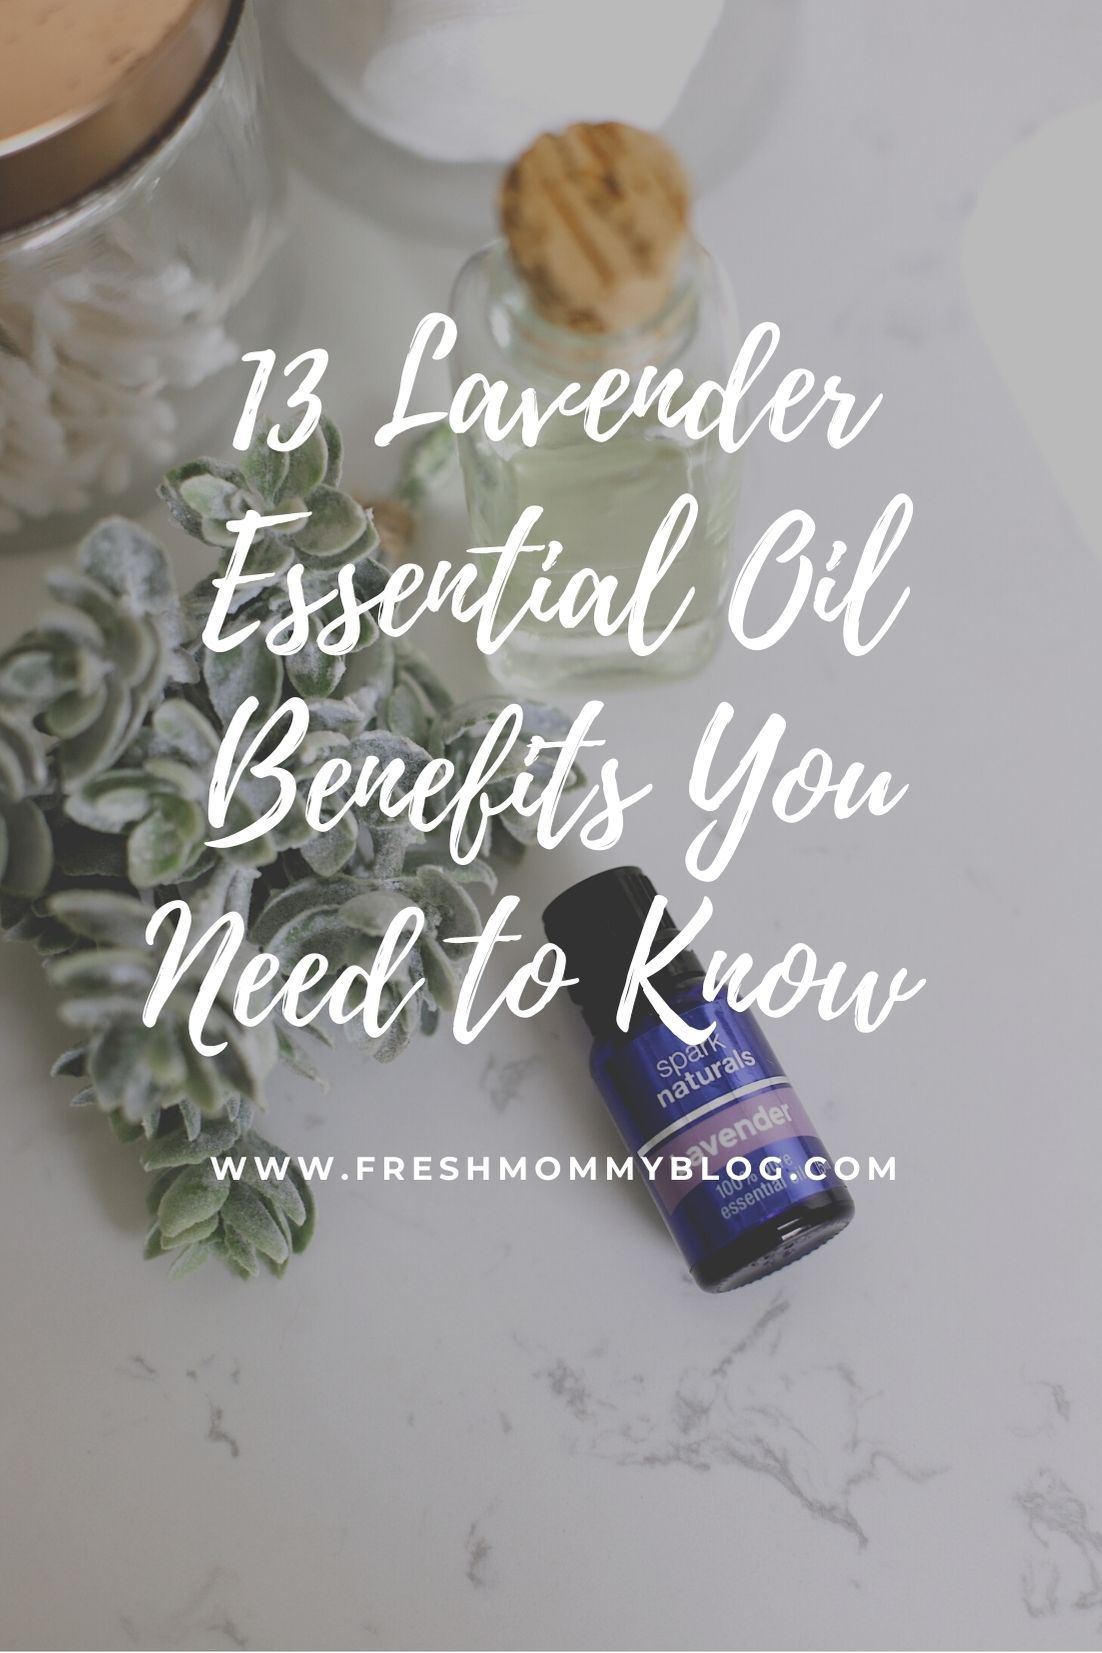 13 Spectacular Lavender Essential Oil Benefits You Need to Know About from Top US Lifestyle Blogger Tabitha Blue of Fresh Mommy Blog. | Lavender Essential Oil by popular Florida lifestyle blog, Fresh Mommy Blog: Pinterest image of Spark Naturals lavender essential oil.